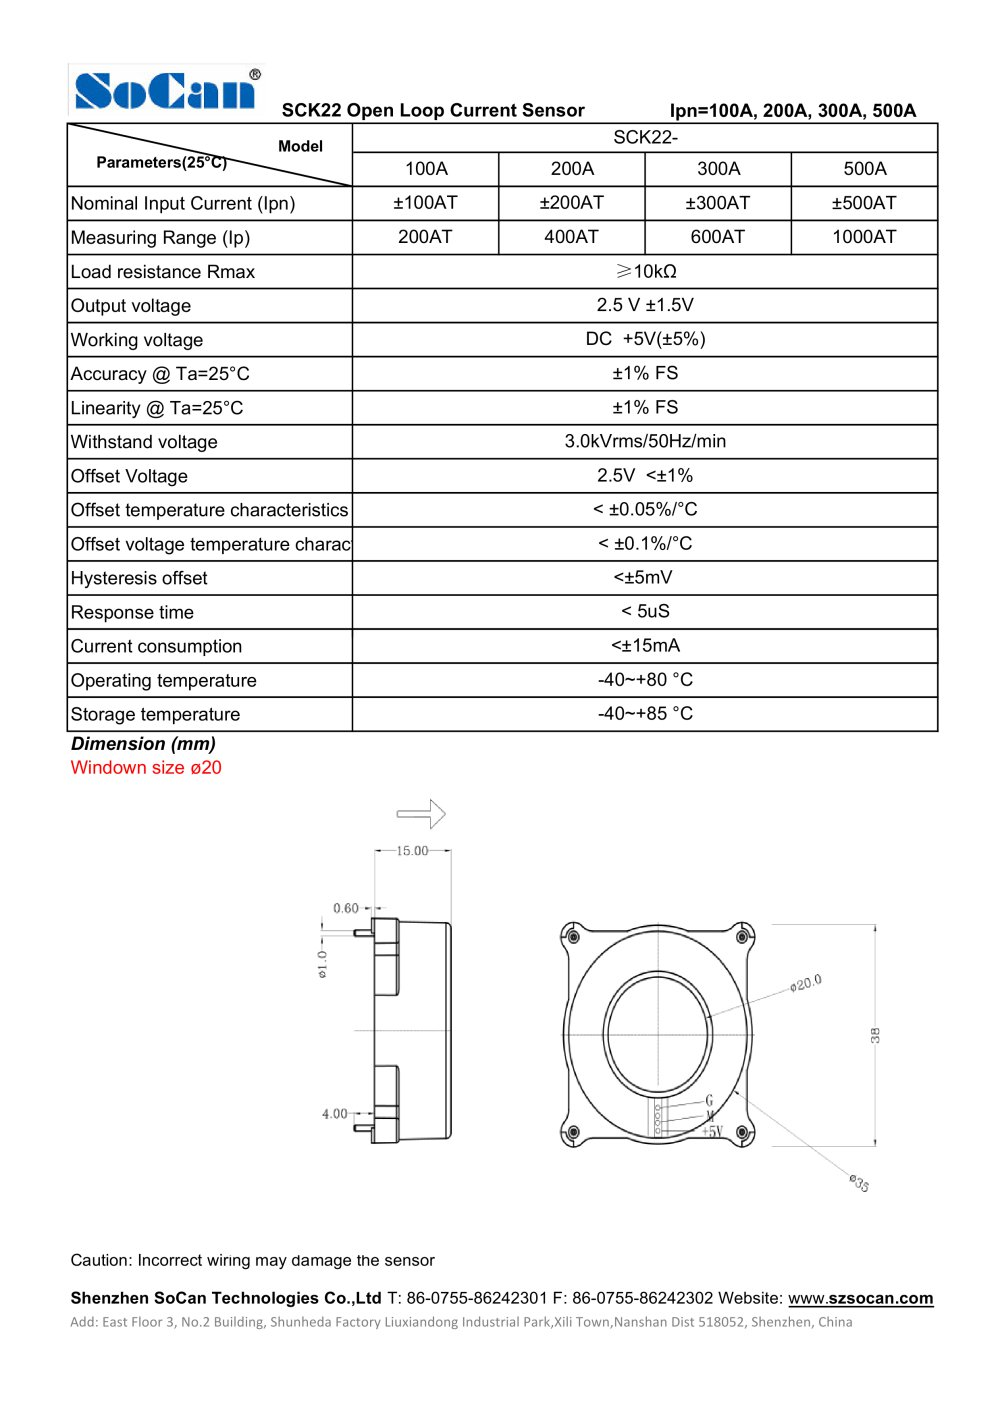 Socan Open Loop Current Sensor Sck22 Series Shenzhen Wiring Diagram 1 Pages